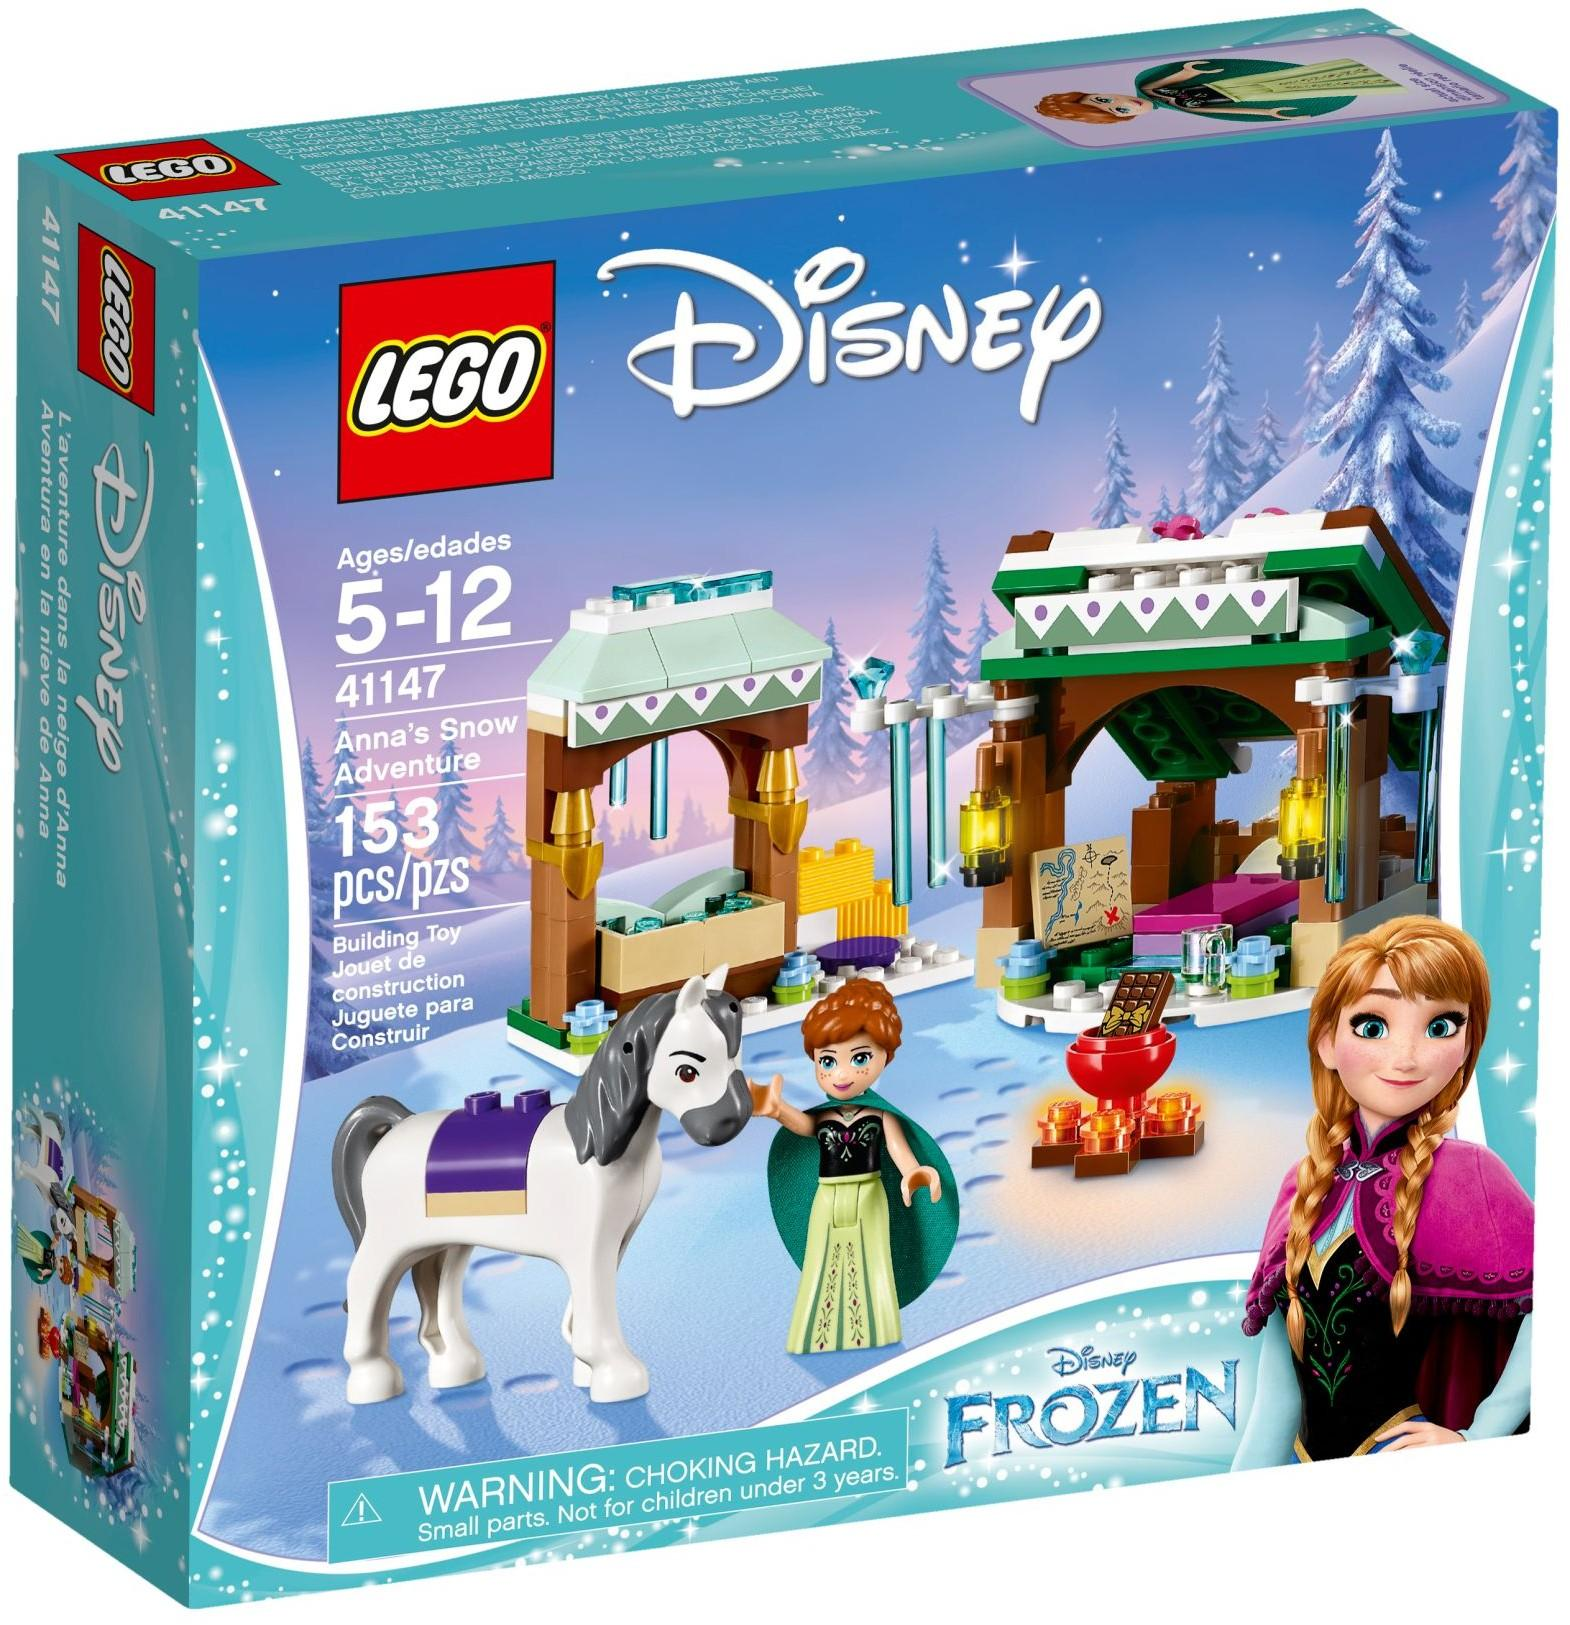 Lego Disney Princess Anna's Snow Adventure